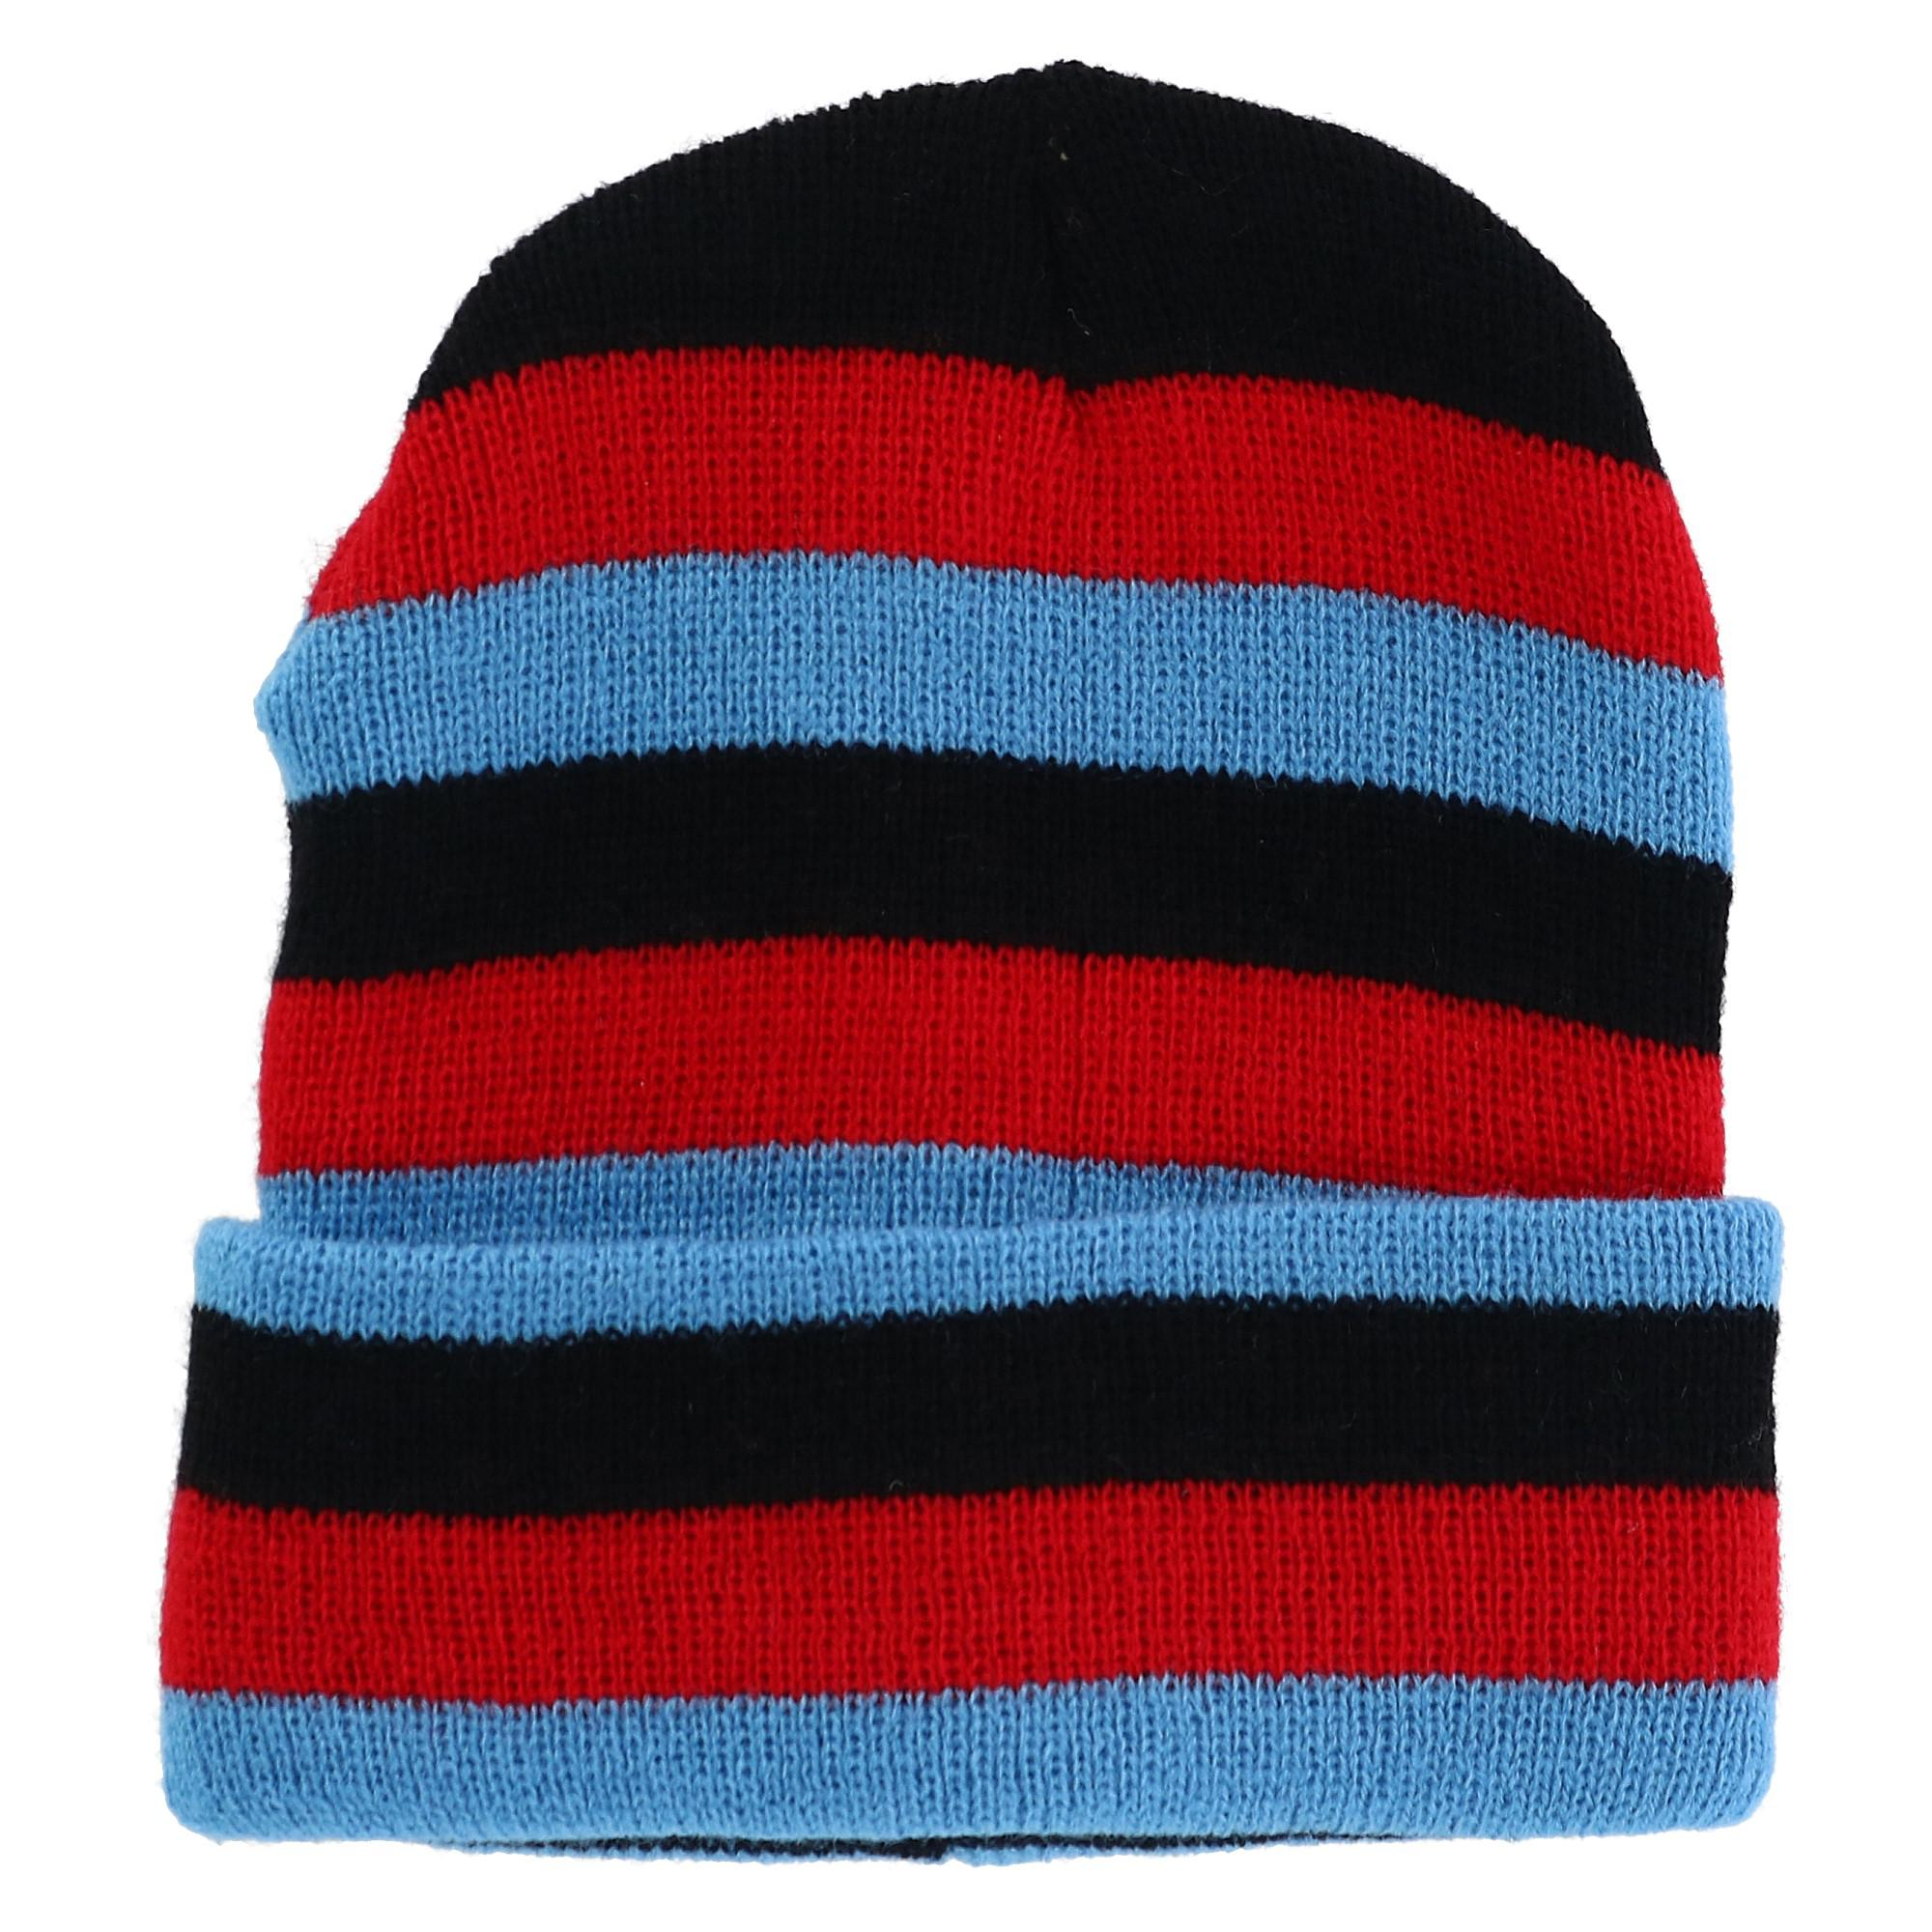 Grand Sierra Kids' Striped Cuff Beanie Cap